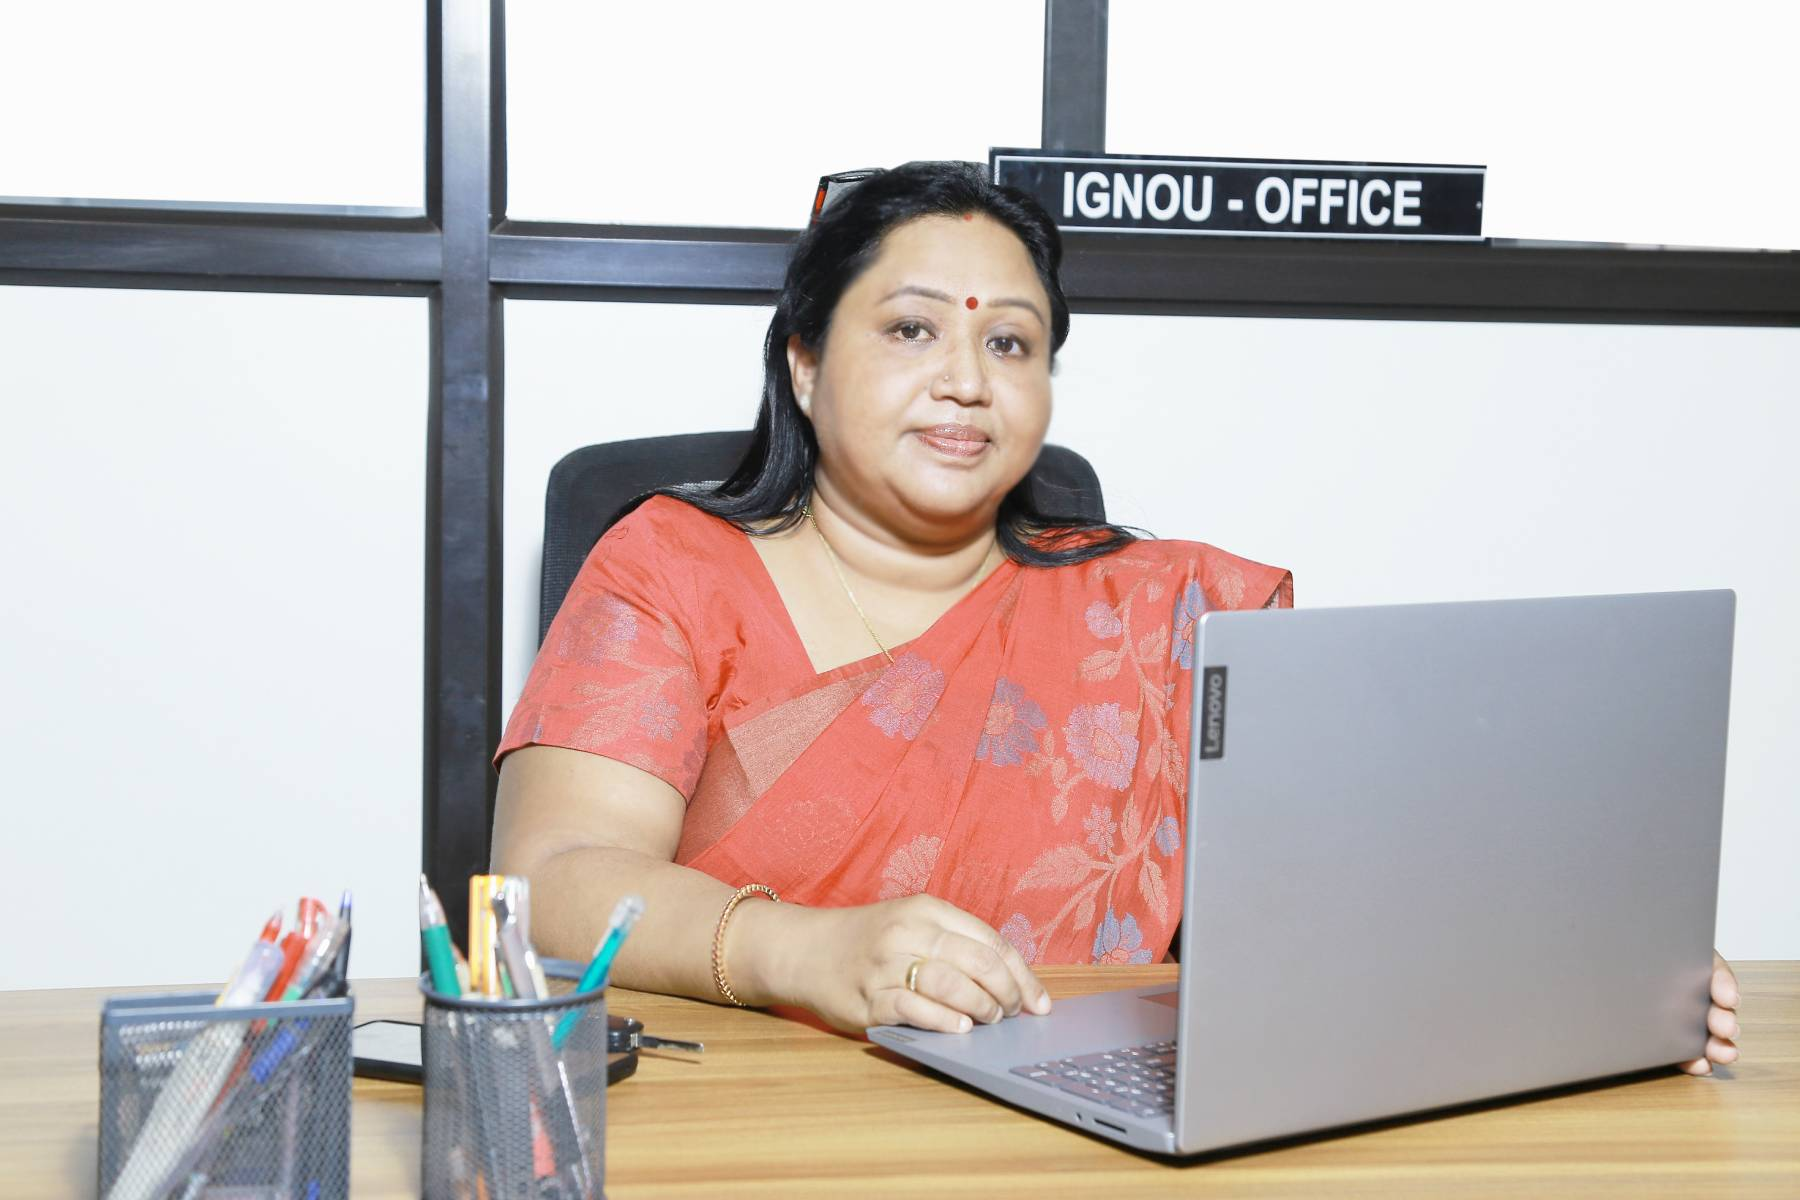 IGNOU Co-ordinator